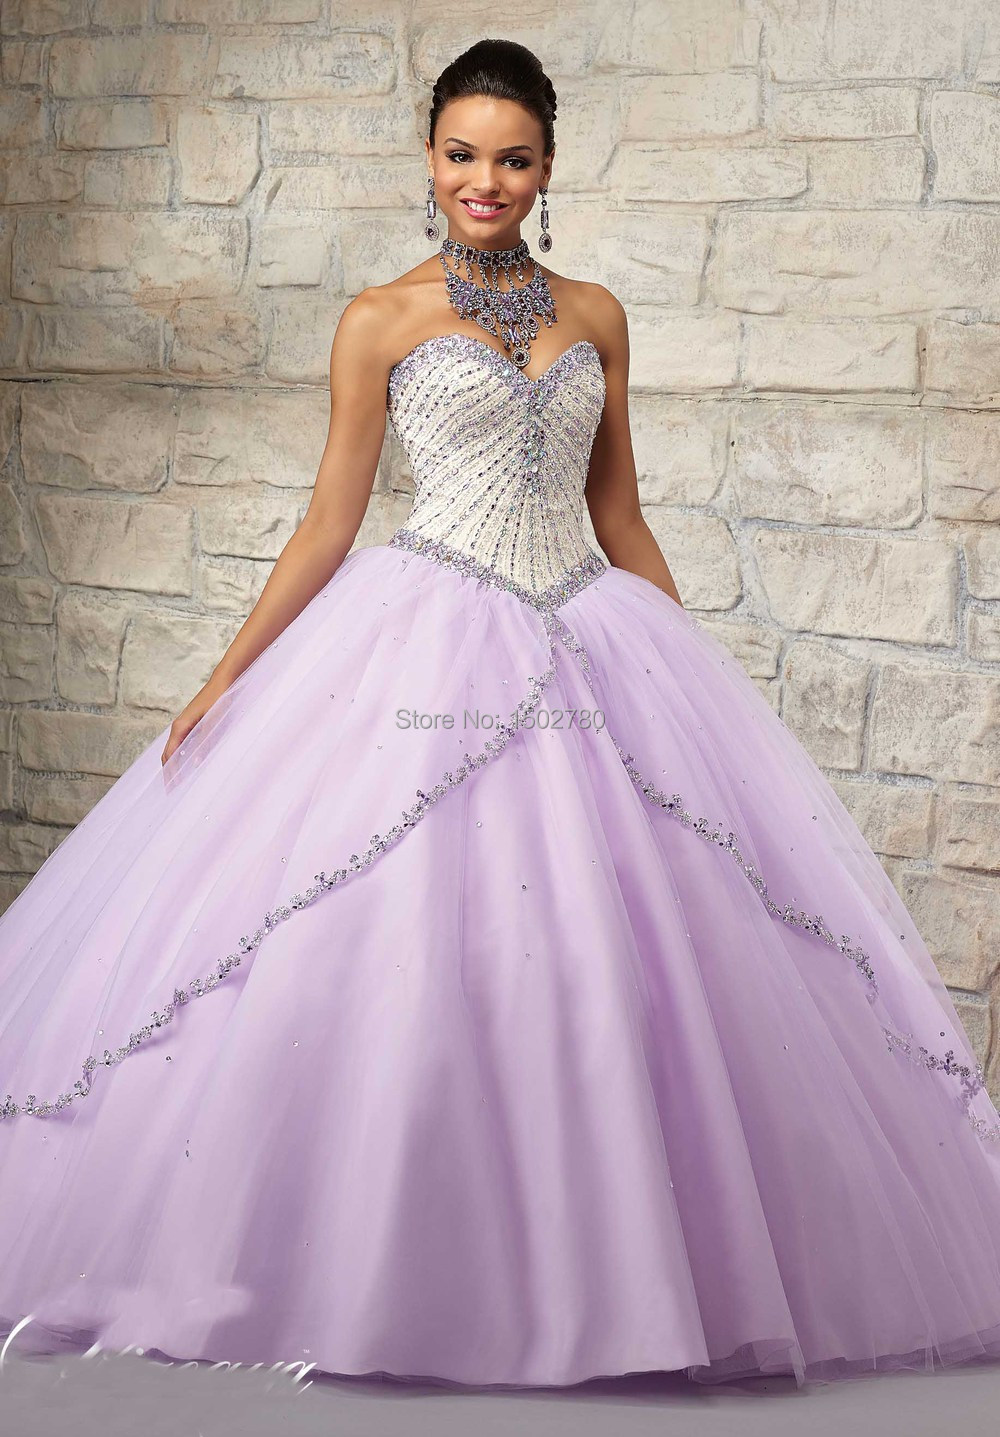 Debut Gowns With Removable Jacket Beading Sweetheart Ball Gown Lilac Quinceanera Dresses-in Quinceanera Dresses from Weddings & Events on ...